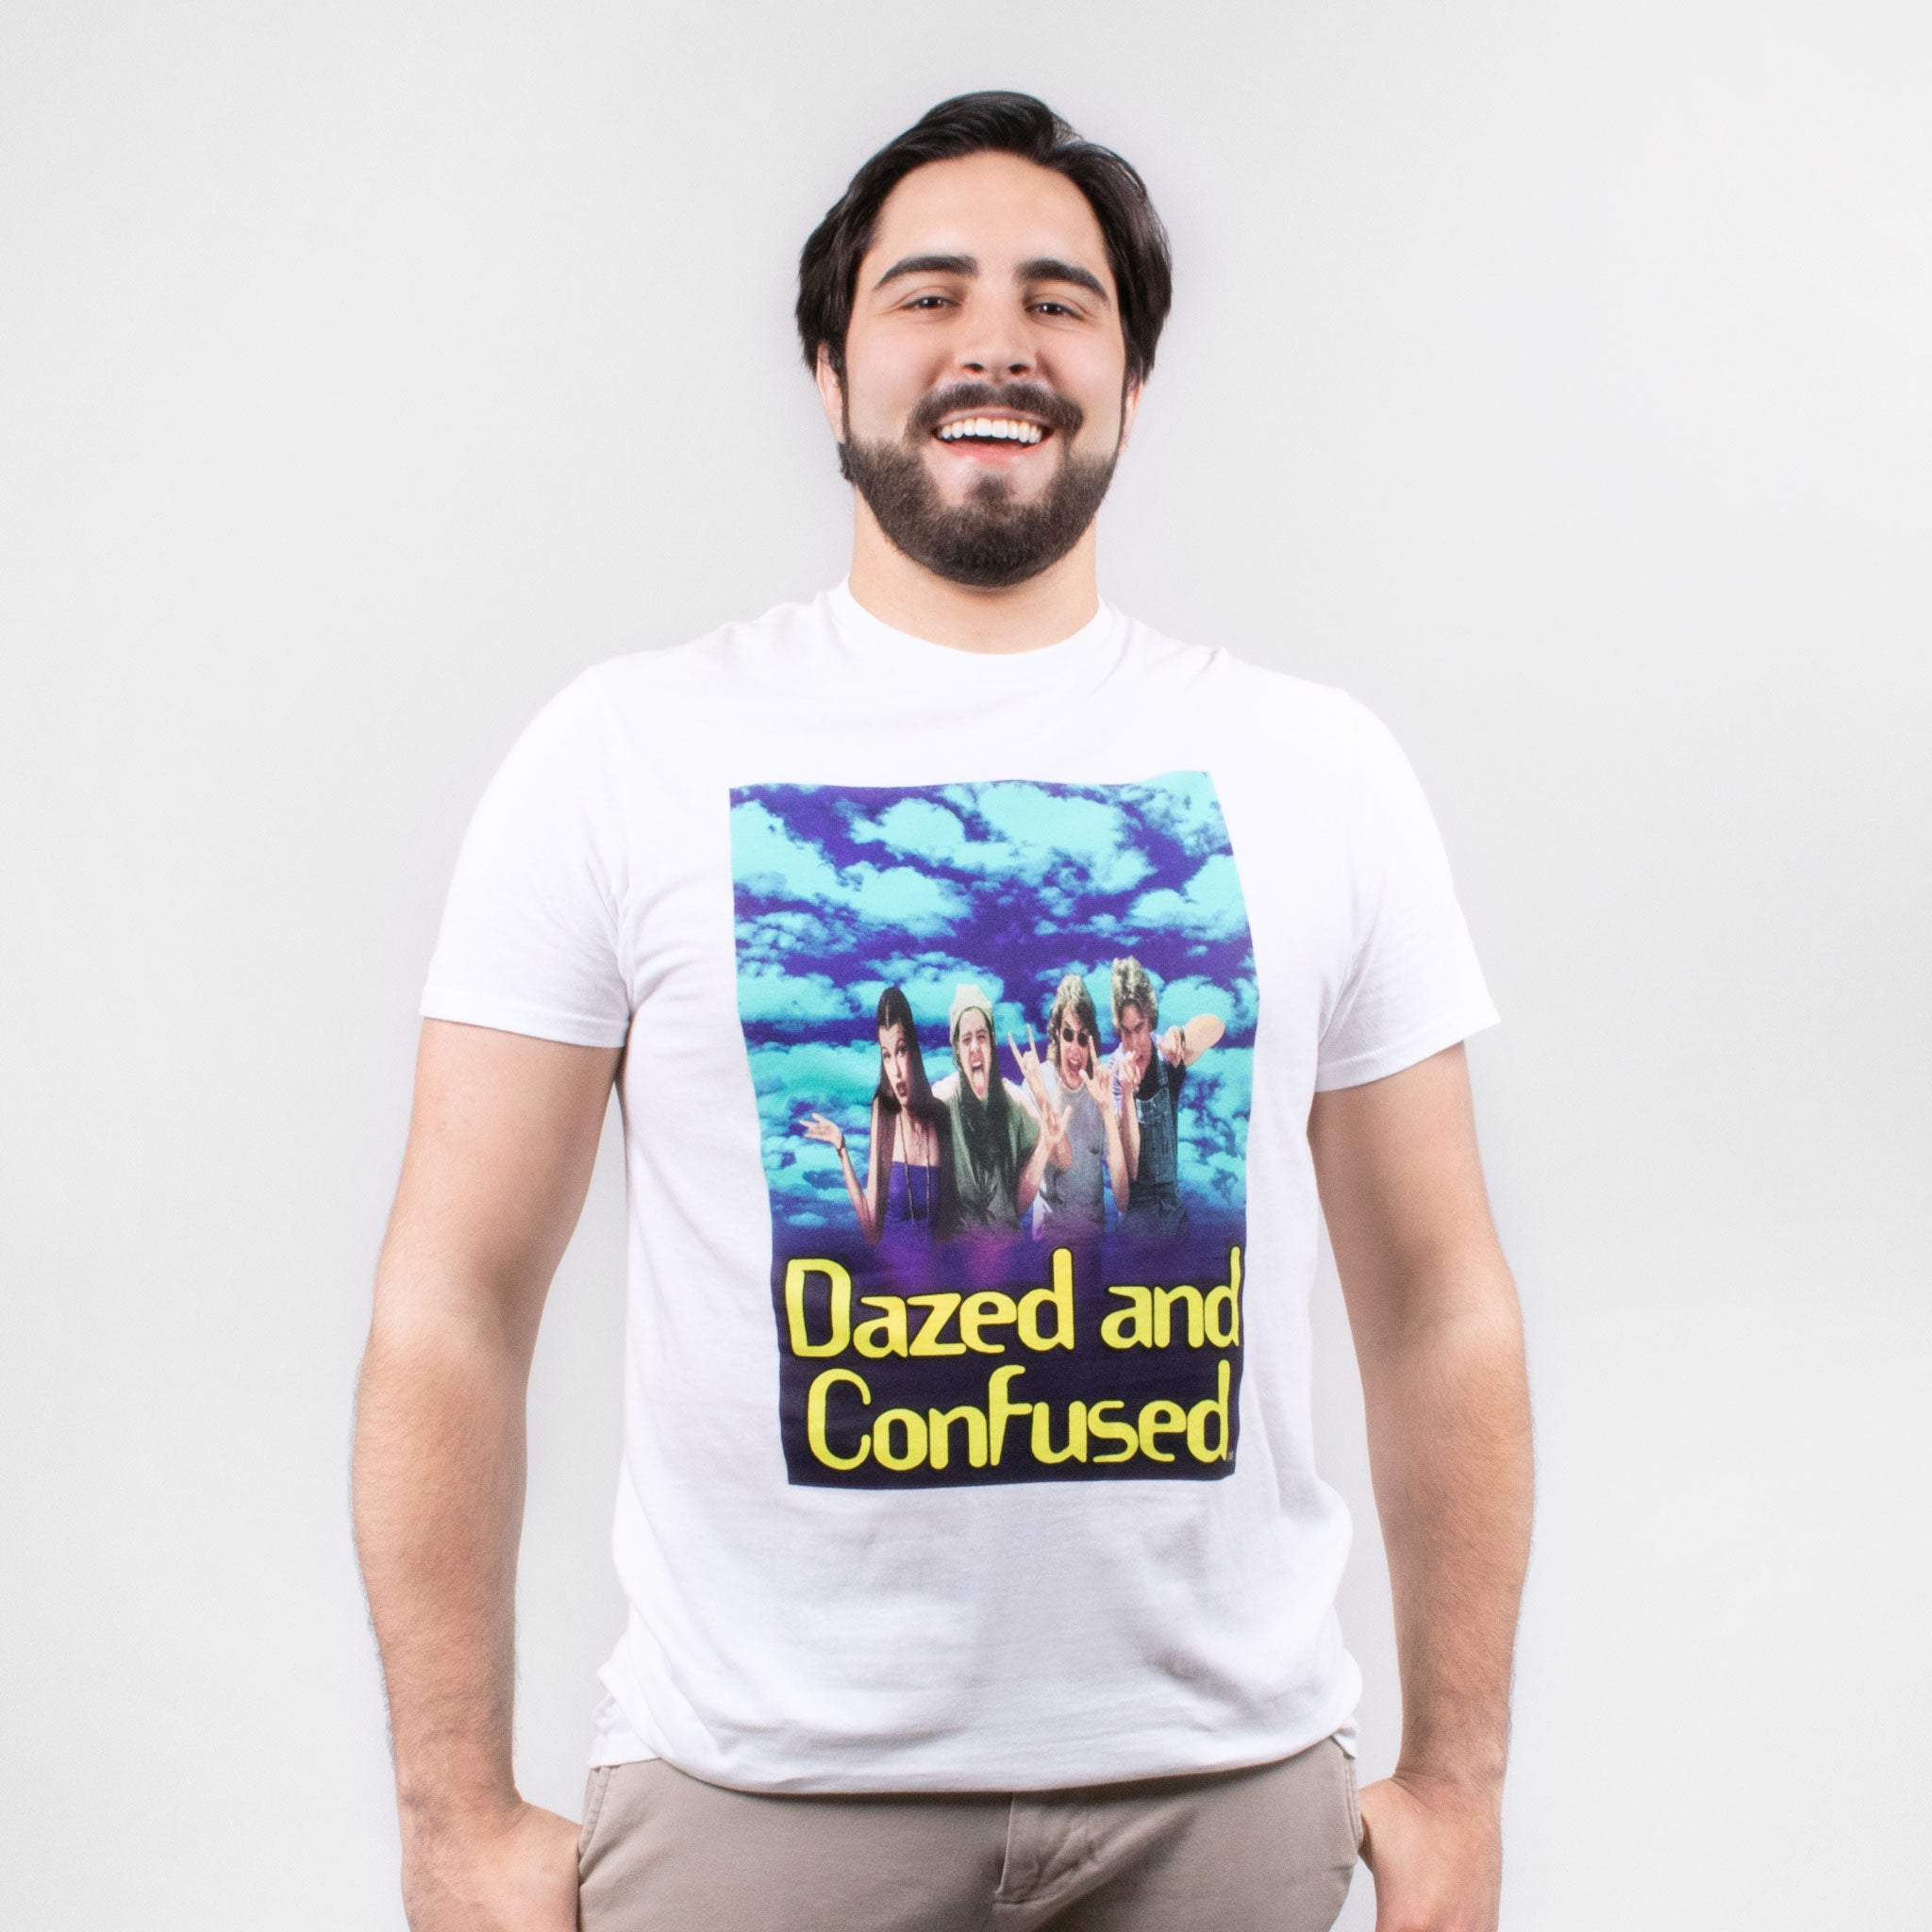 men dazed and confused 25th anniversary group t-shirt graphic shirt apparel culturefly